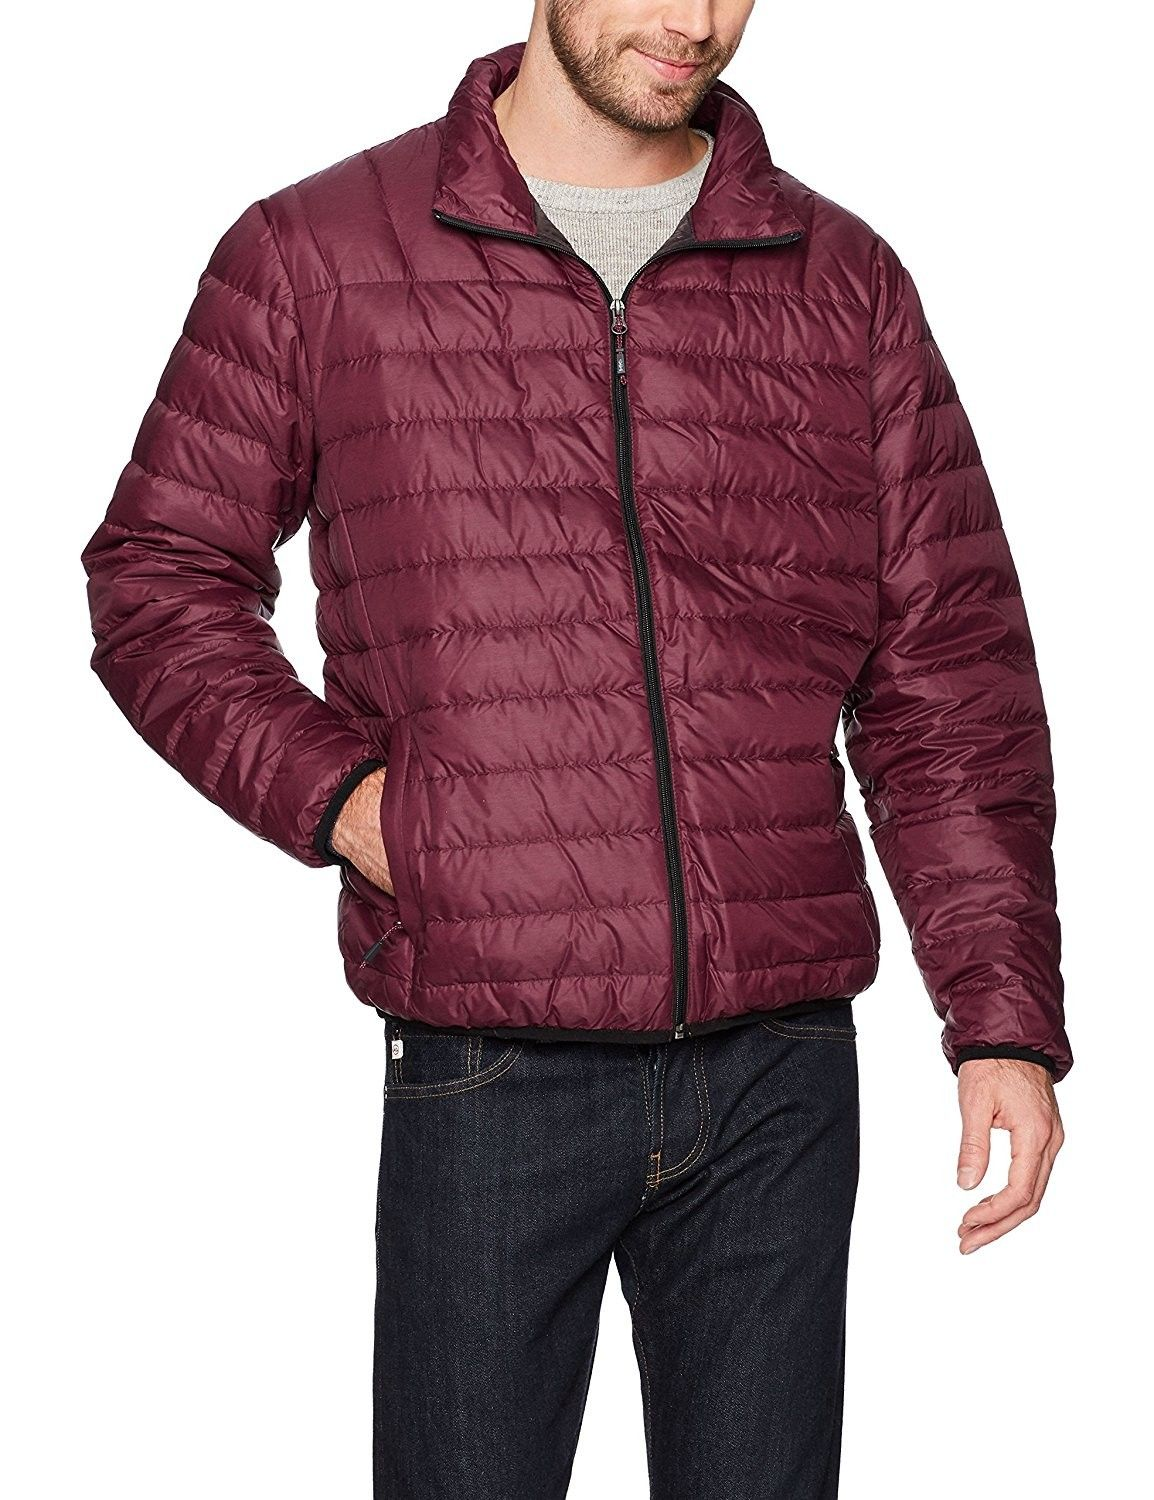 Hawke & Co Men's Poly Packable Puffer Jacket Eggplant